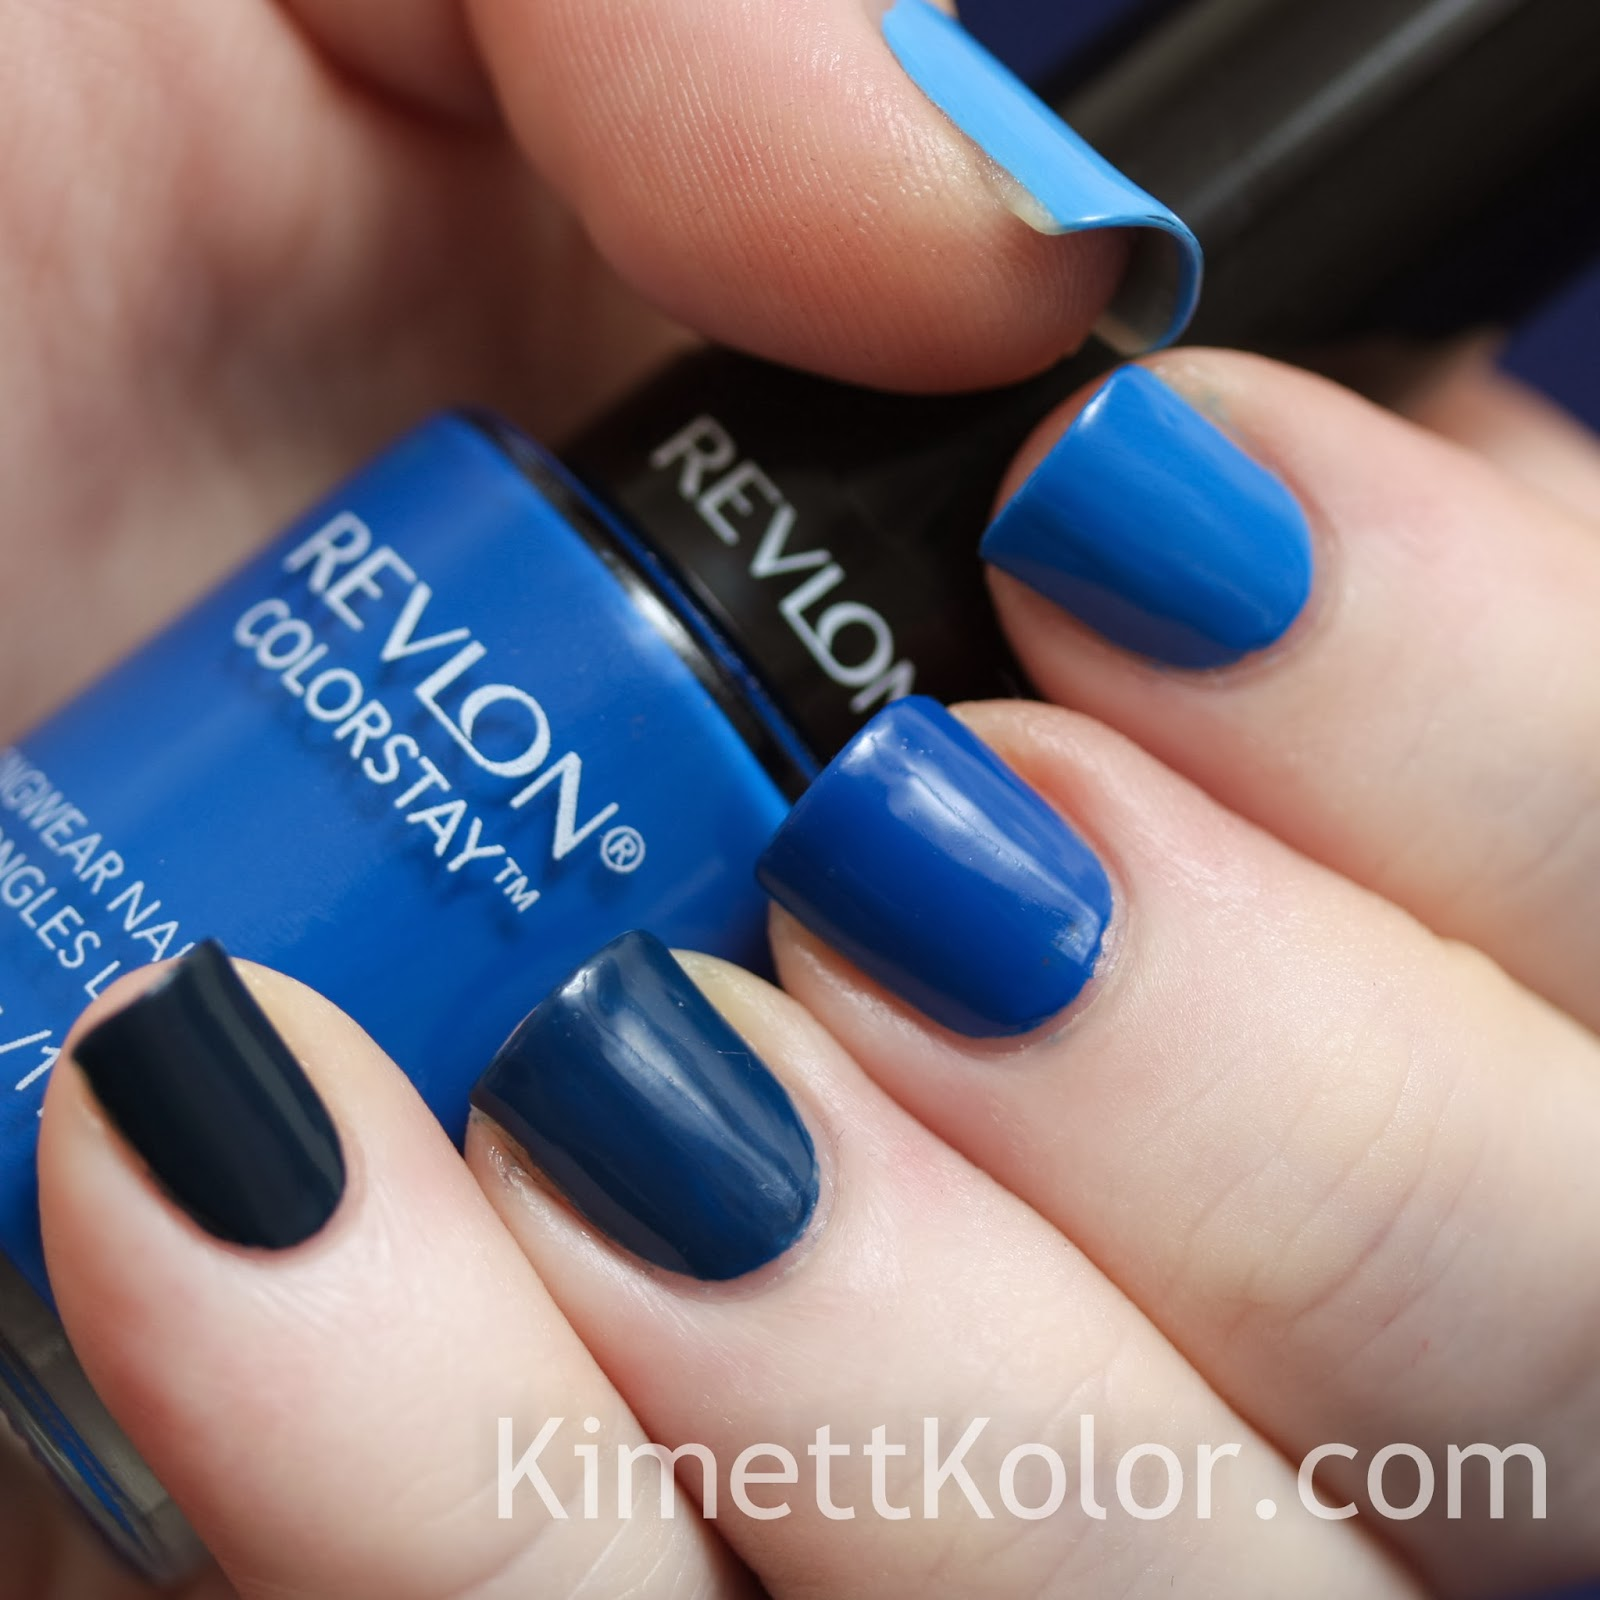 Blue Ombre First Then Kimett Kolor